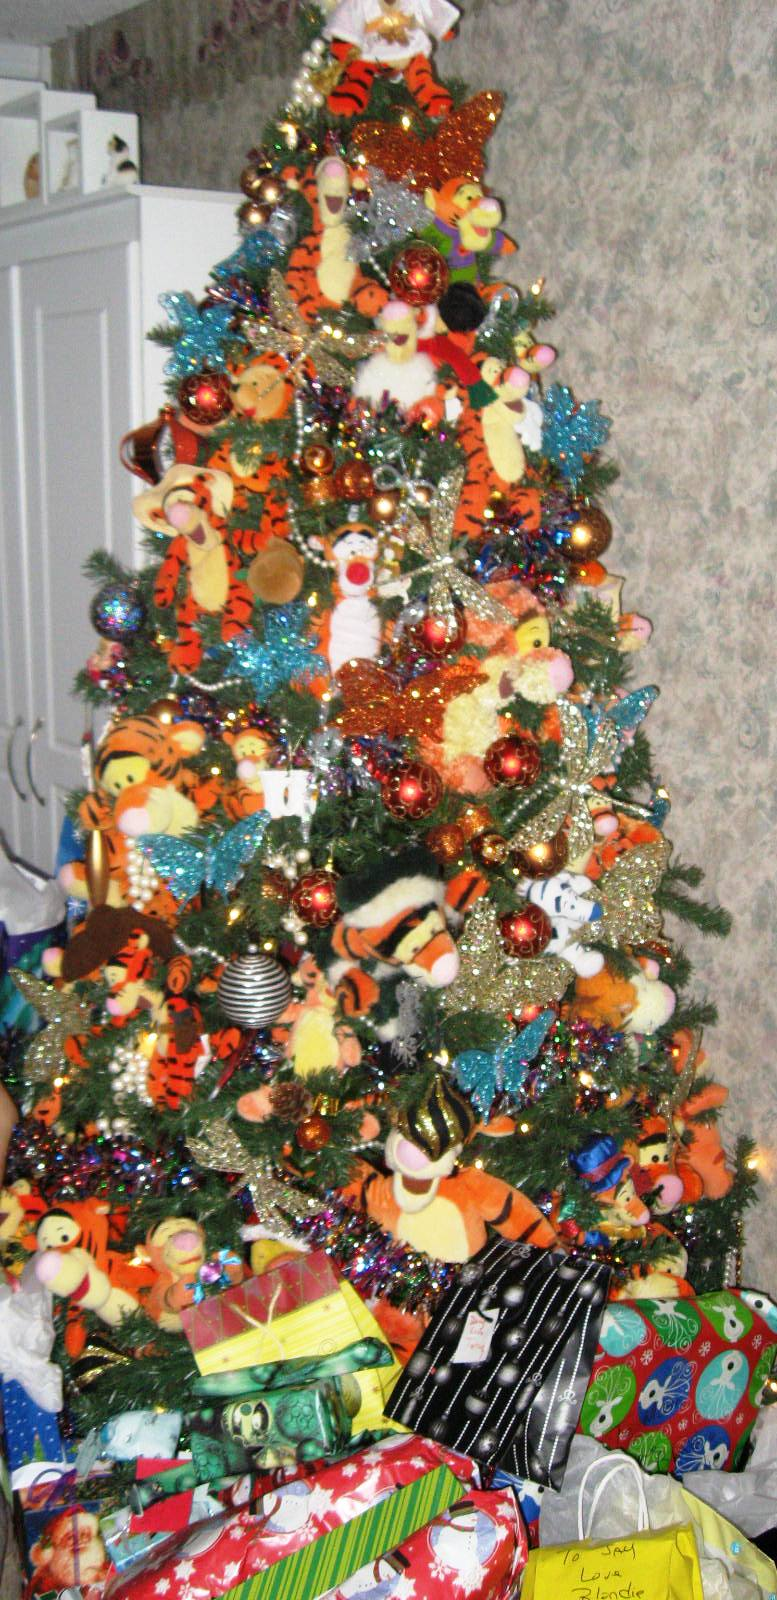 Tigger Christmas-Tree. Photo by Carla 'Carley' Cooper. All copyrights reserved